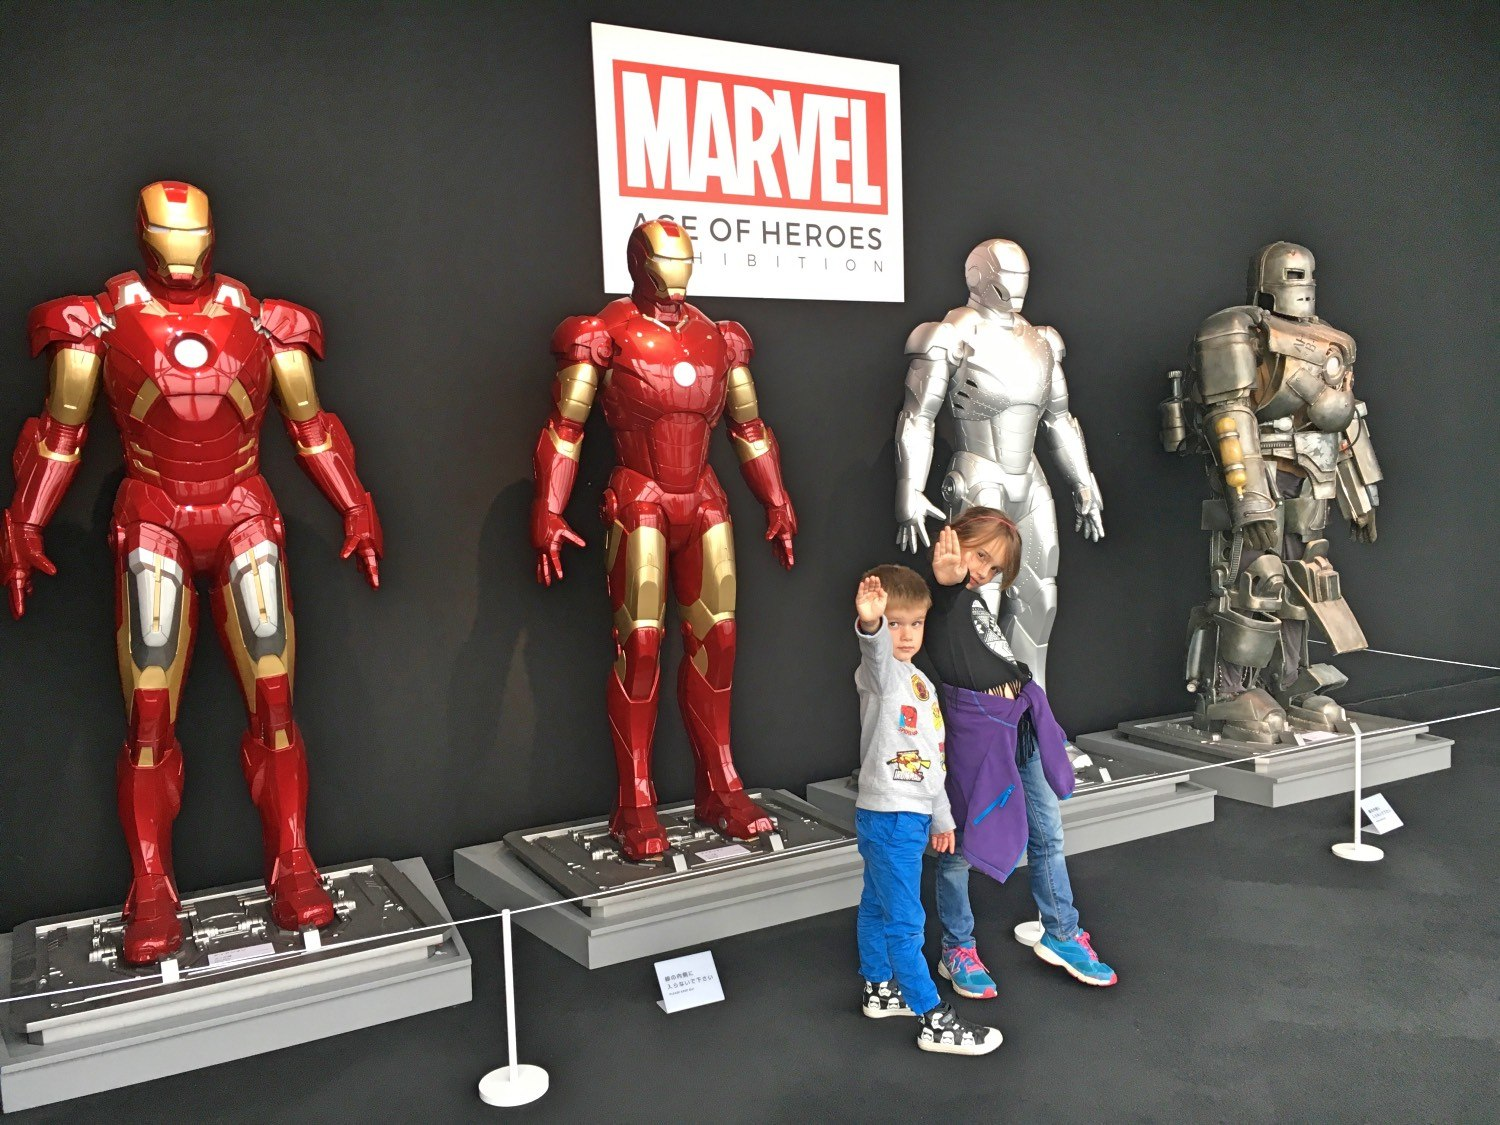 Marvel exhibition at Tokyo City View 5e6bf6069d9f4